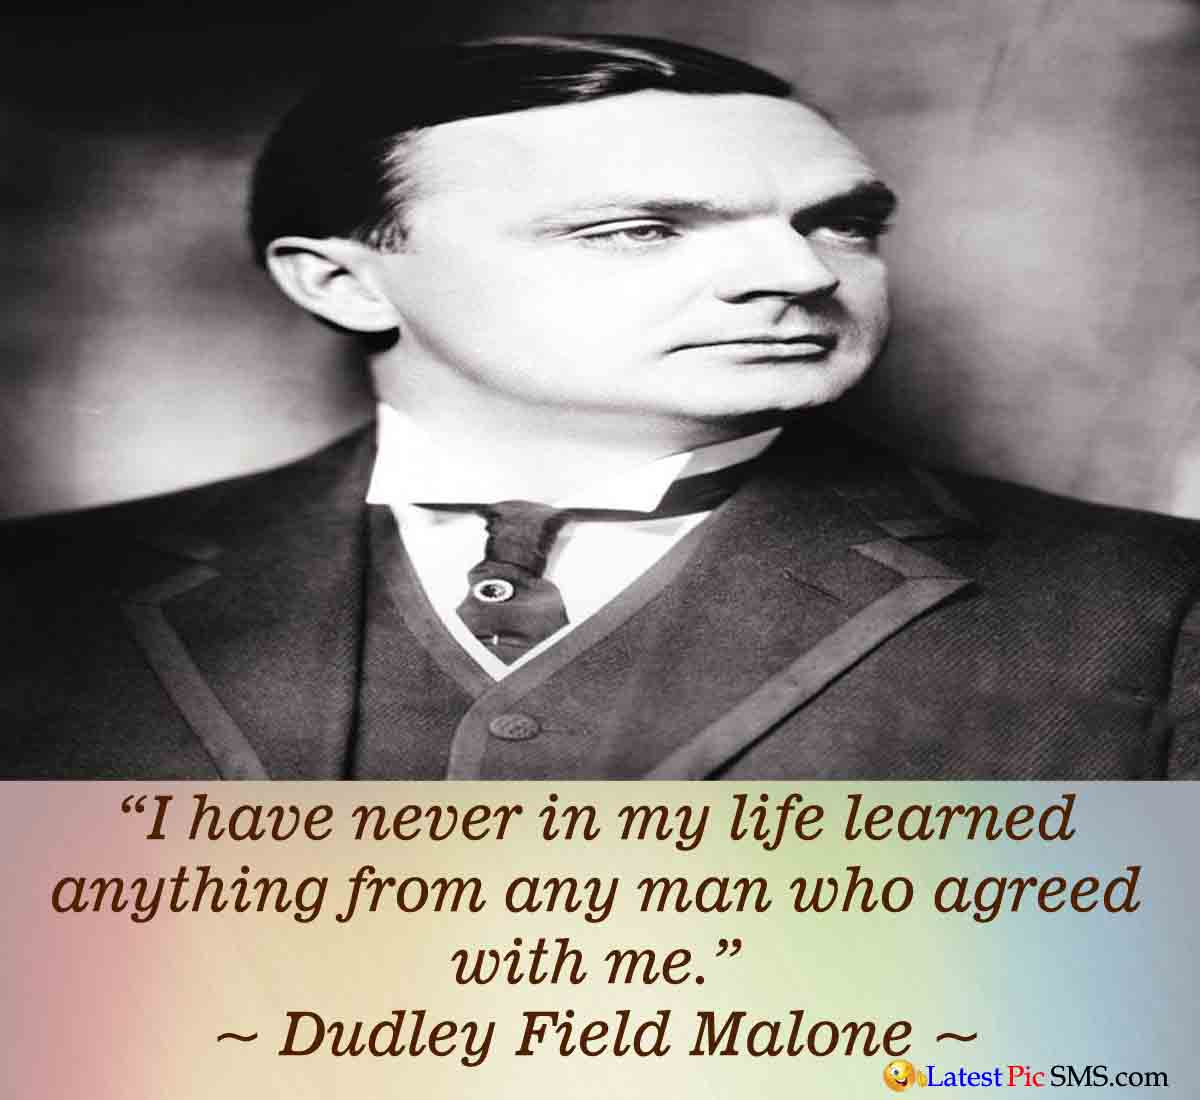 Dudley Field Malone Life Thought